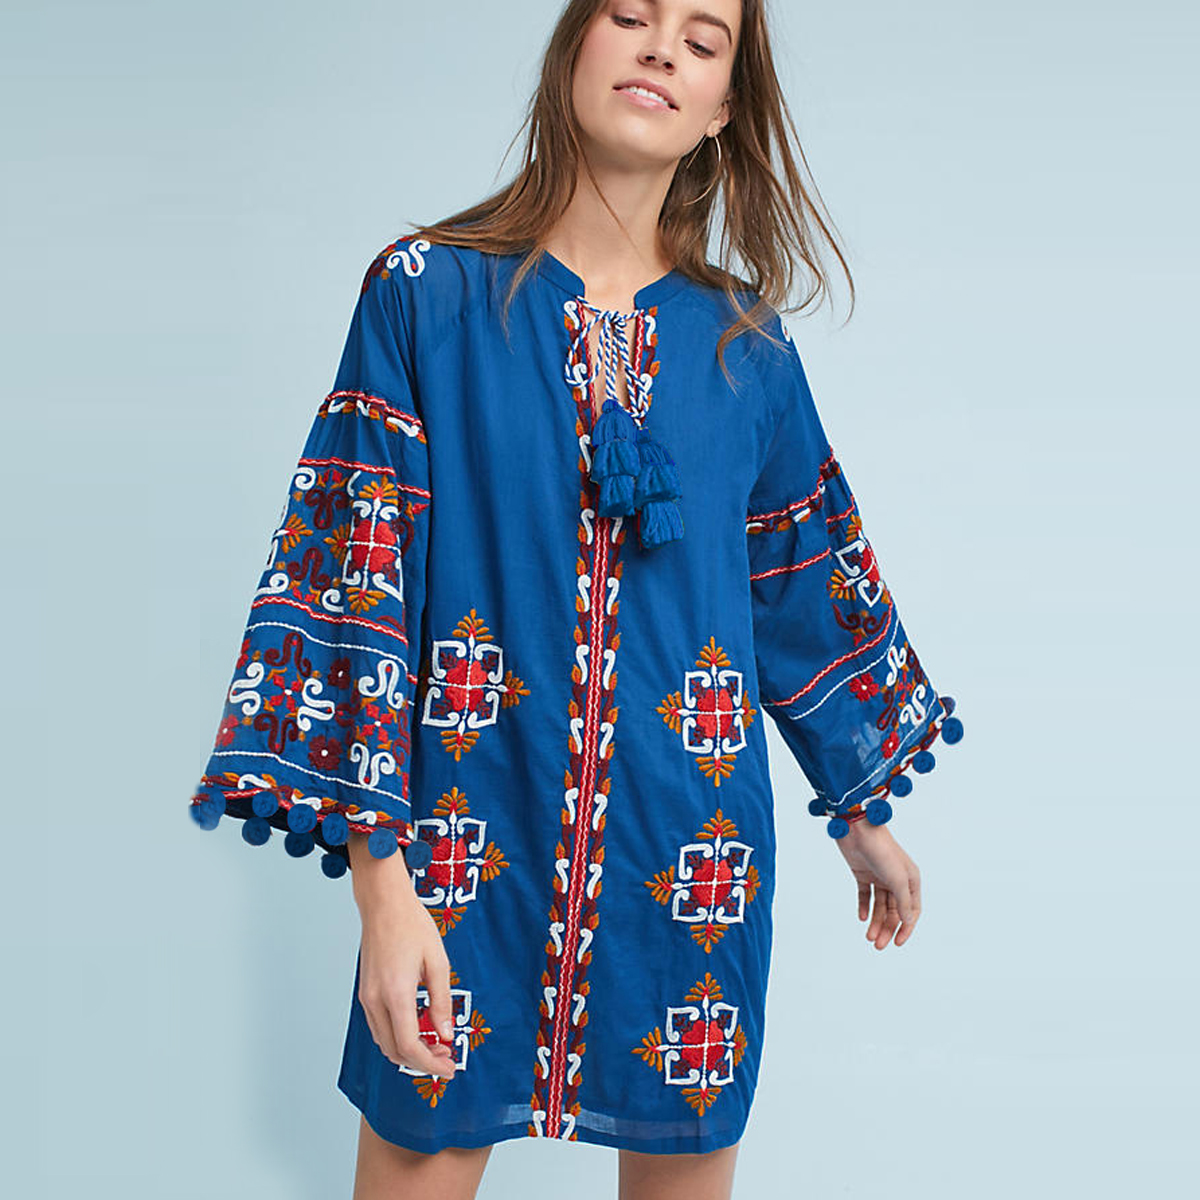 Jastie Palma Embroidered Tunic Dress V Neck Casual Boho Chic Mini Dresses Long Sleeve Spring Women